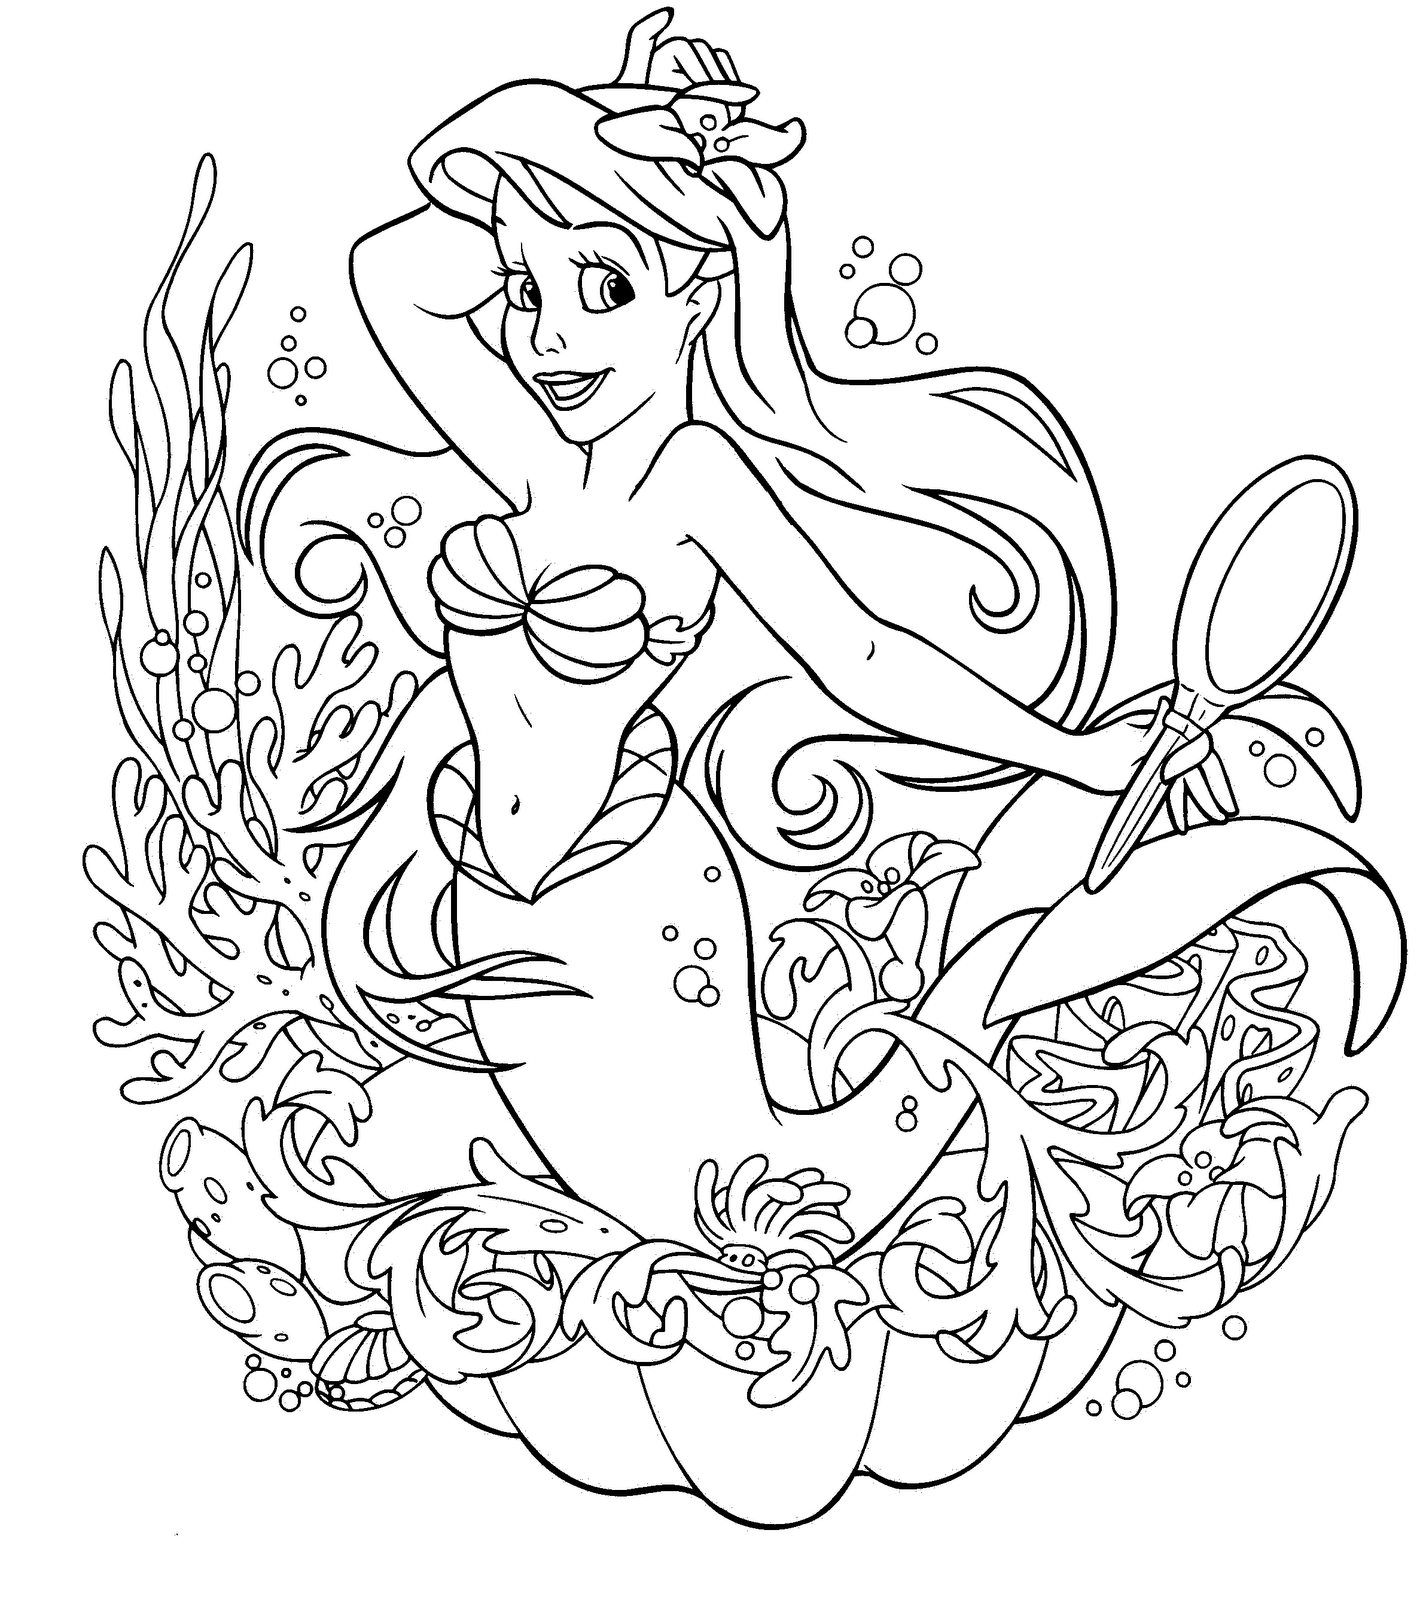 printable coloring book pages disney - Disney Coloring Pages > Disney Character Printables